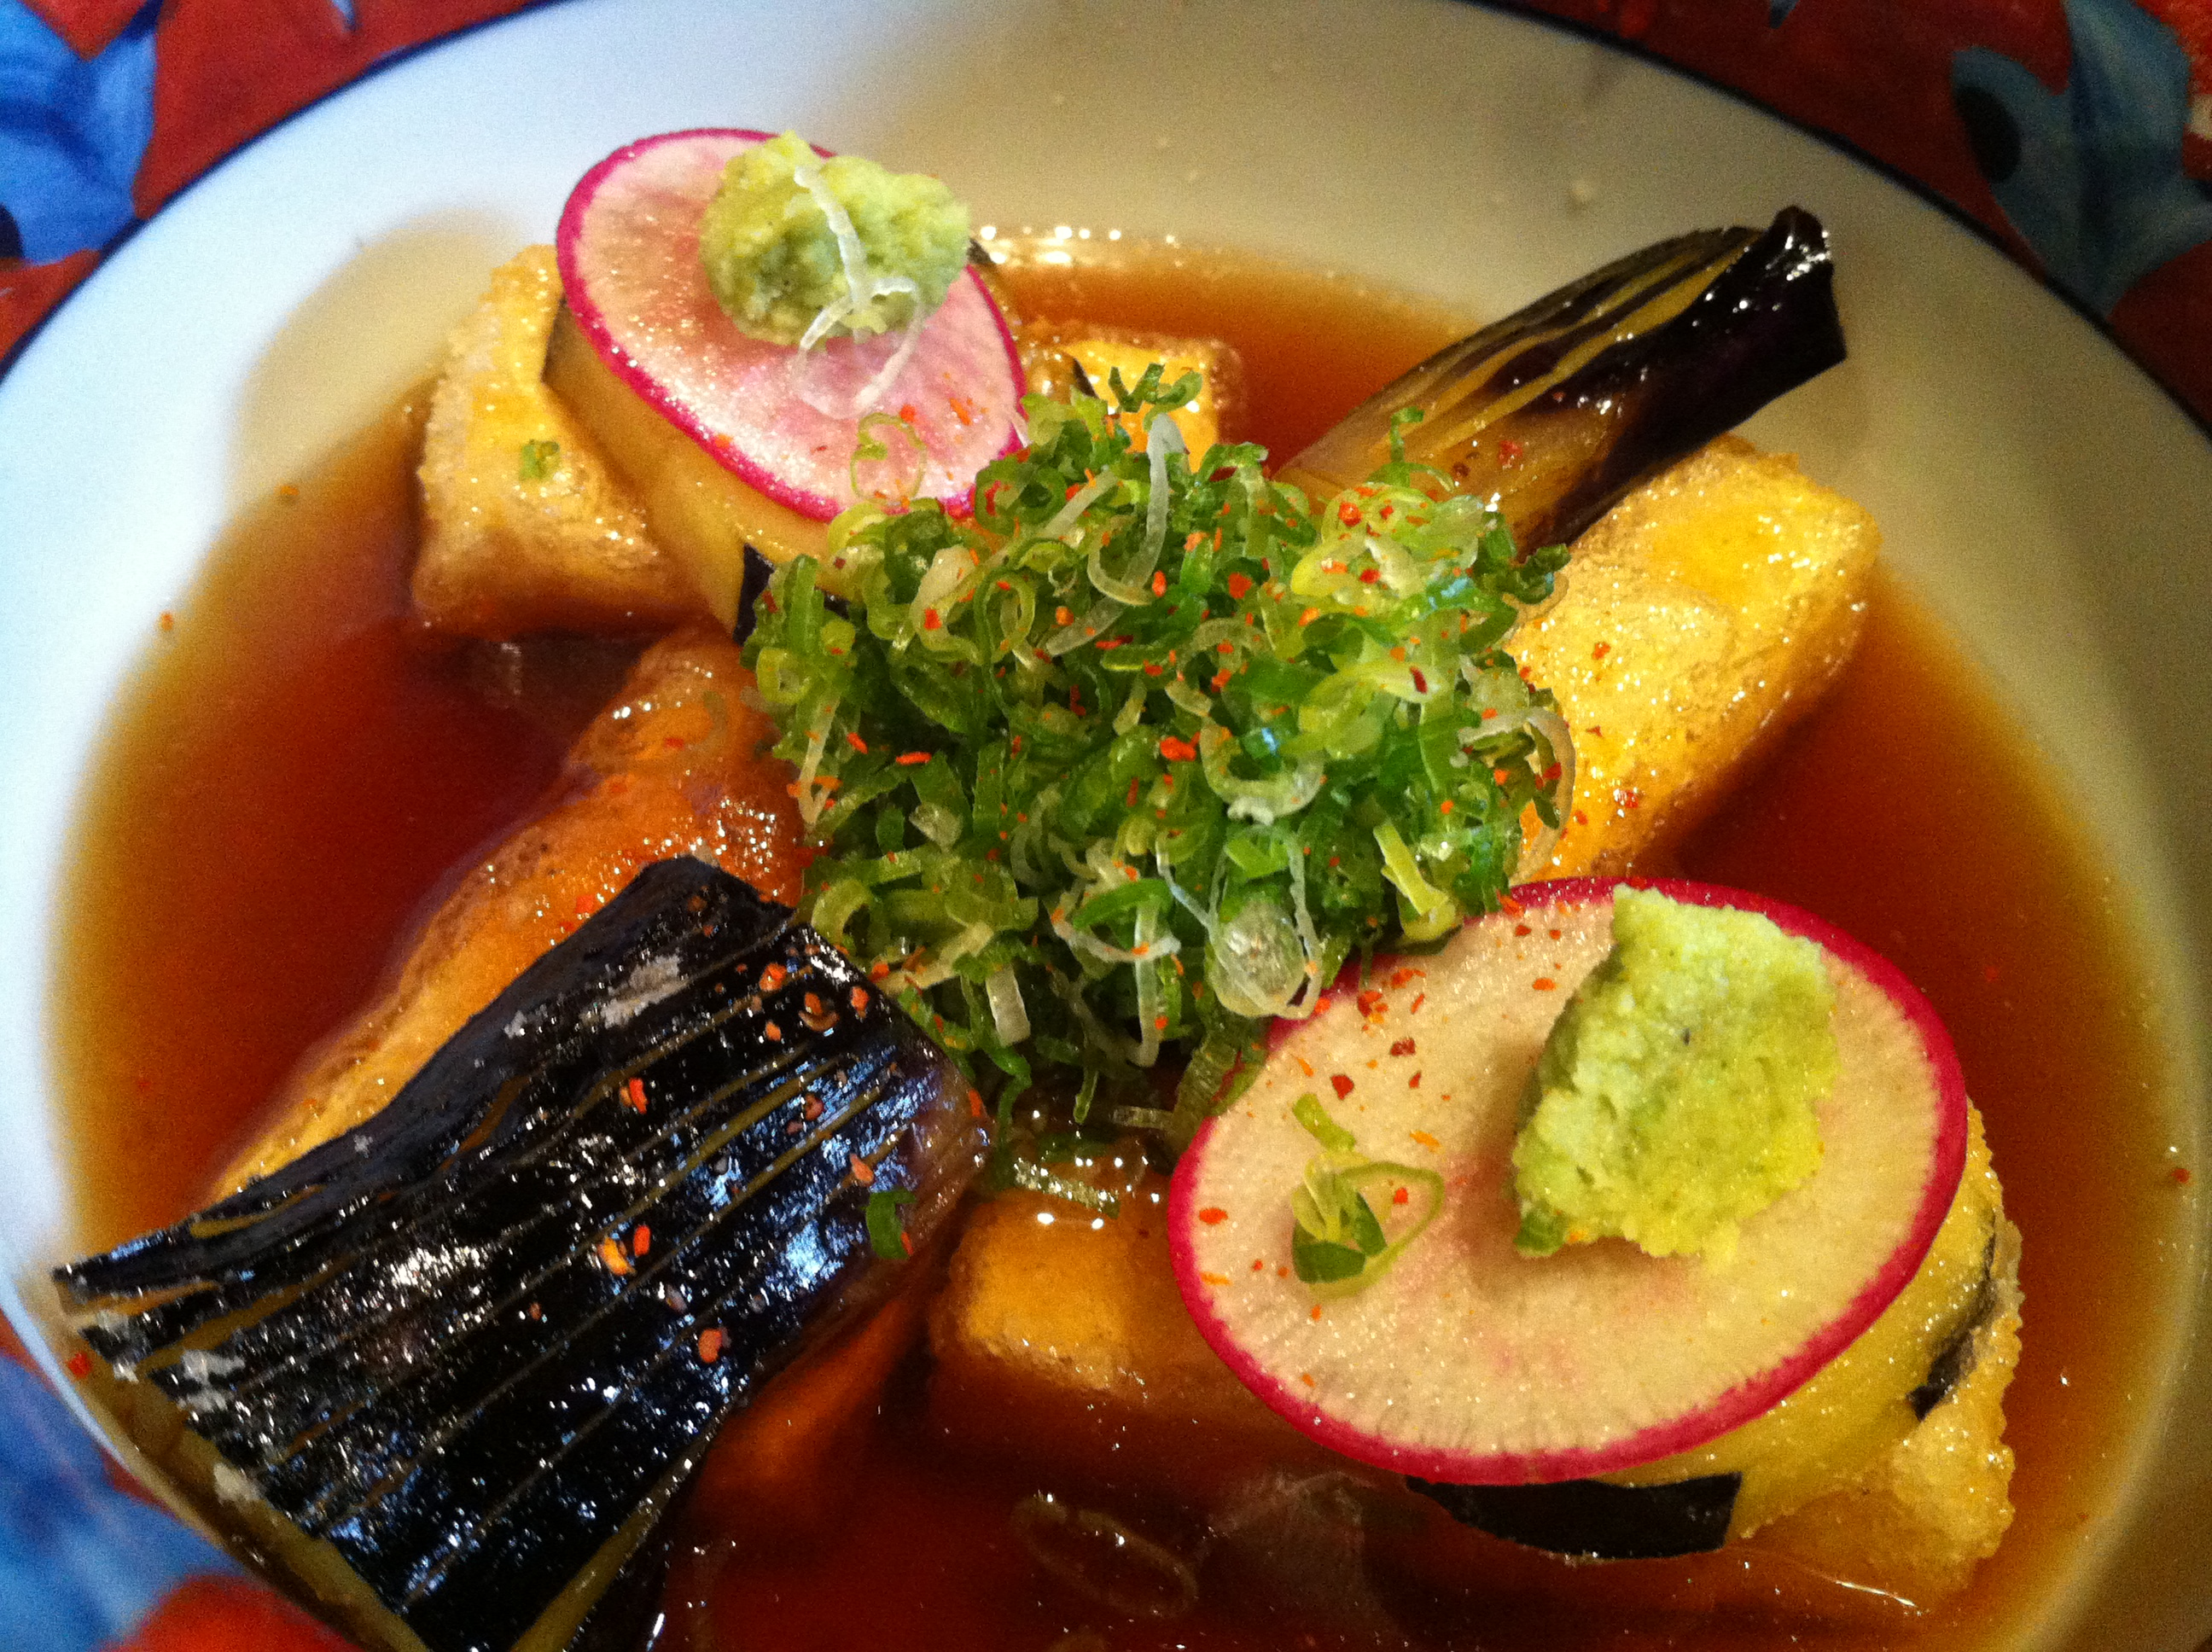 Tofu and Nasu Agedashi - Flash-fried tofu and eggplant in dashi broth, topped with scallions and wasabi